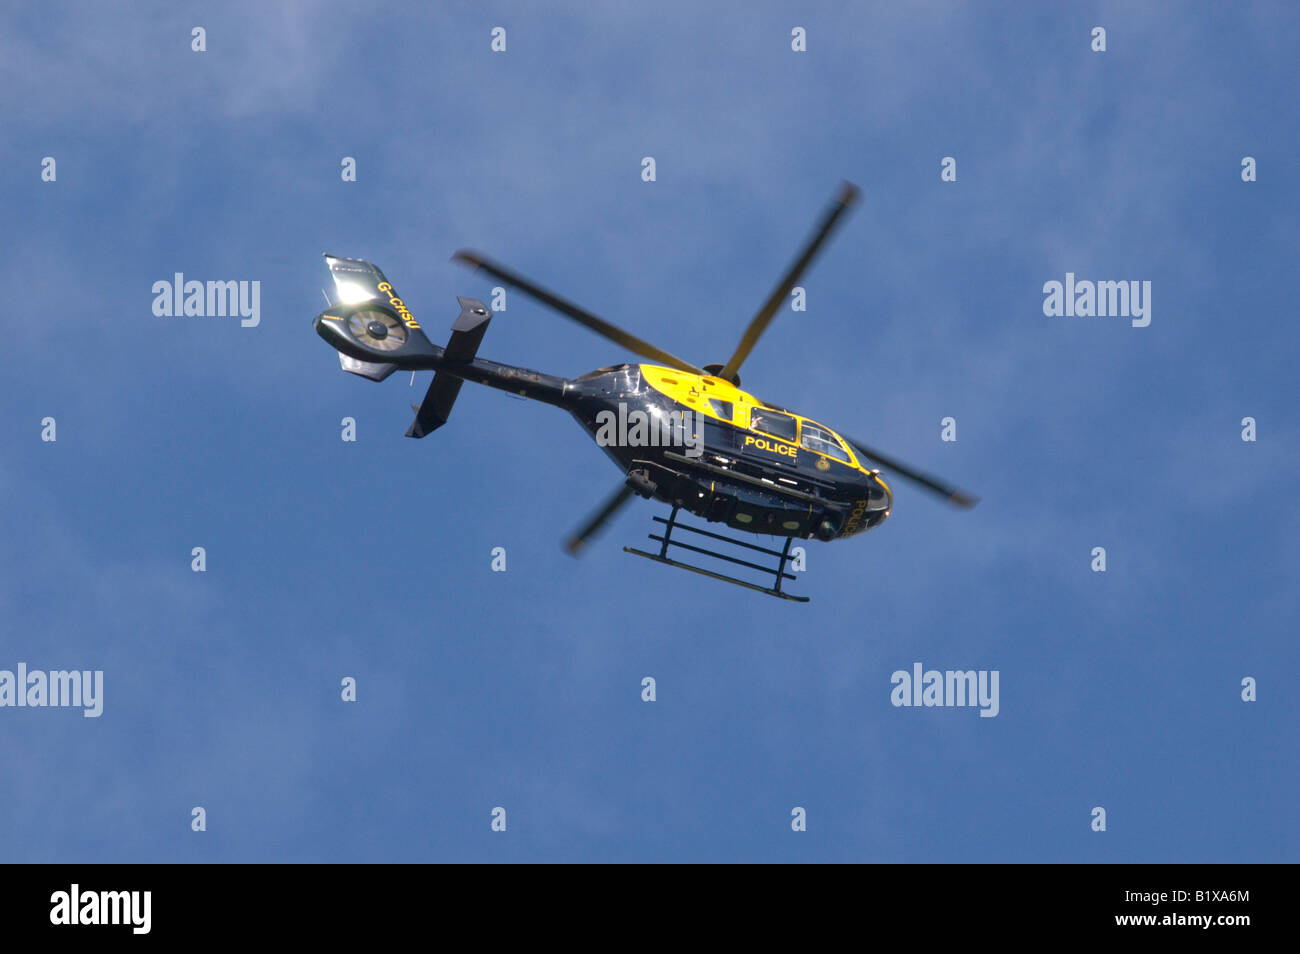 Major police helicopter search in Exeter for man after ...